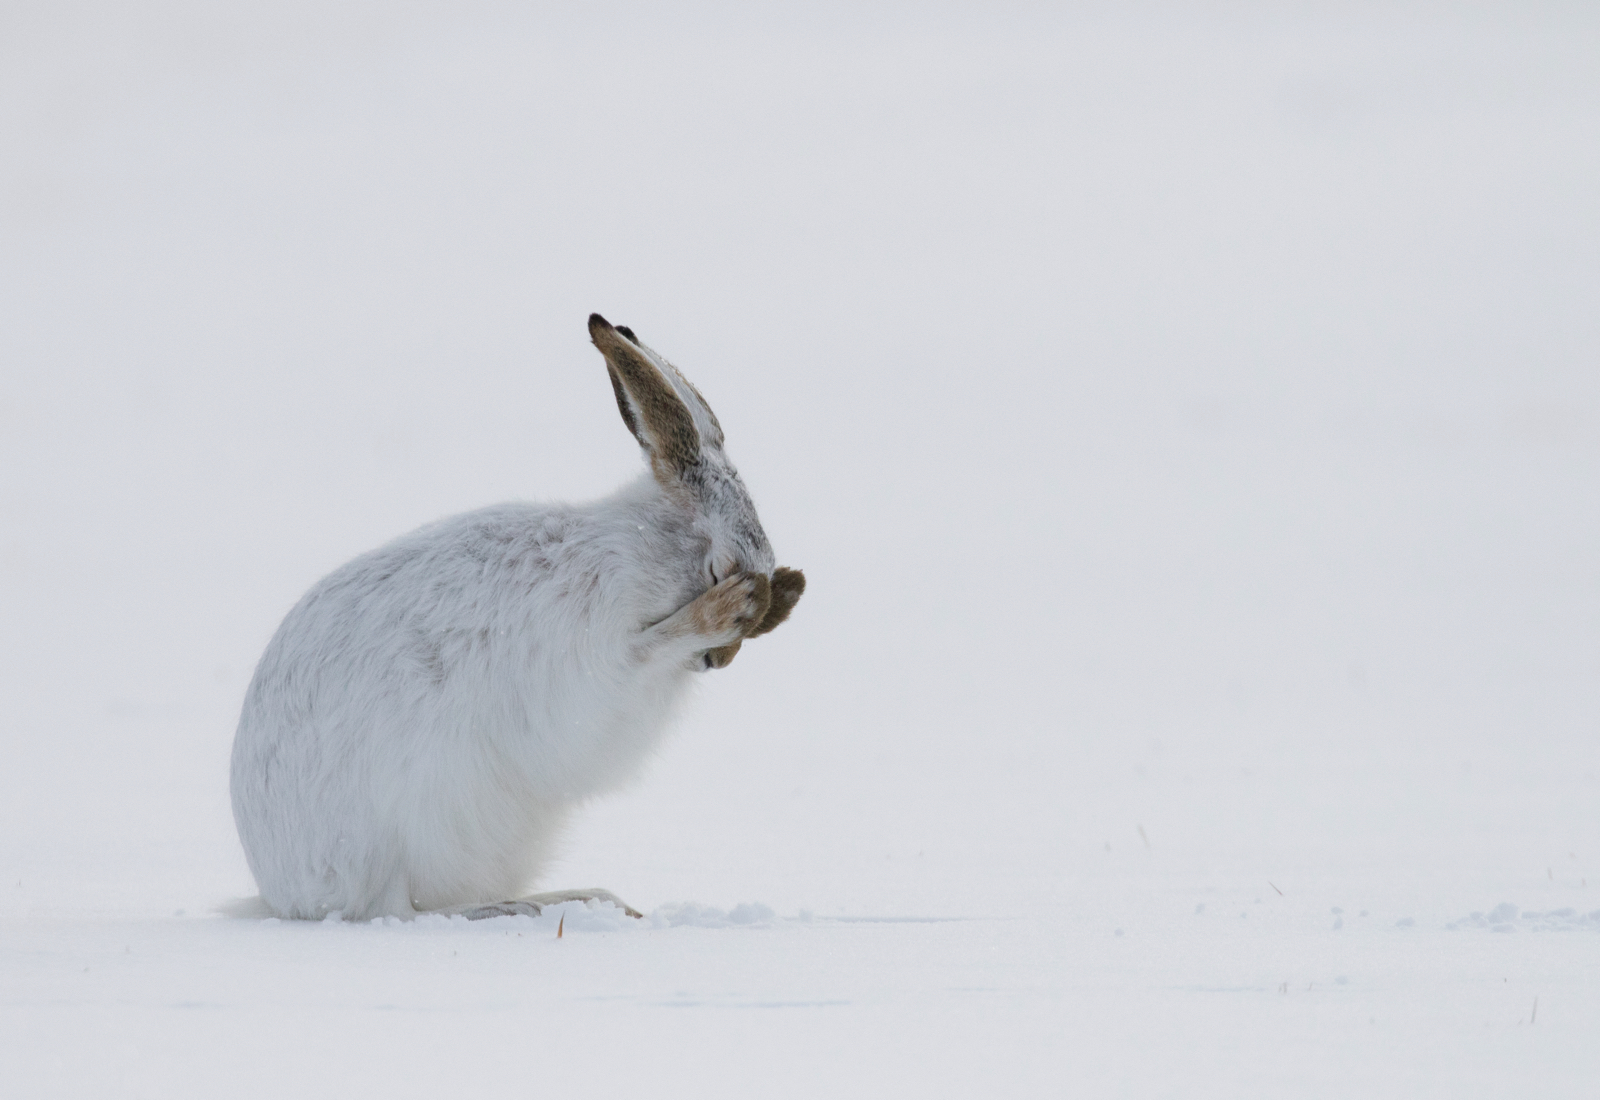 A rabbit in snow